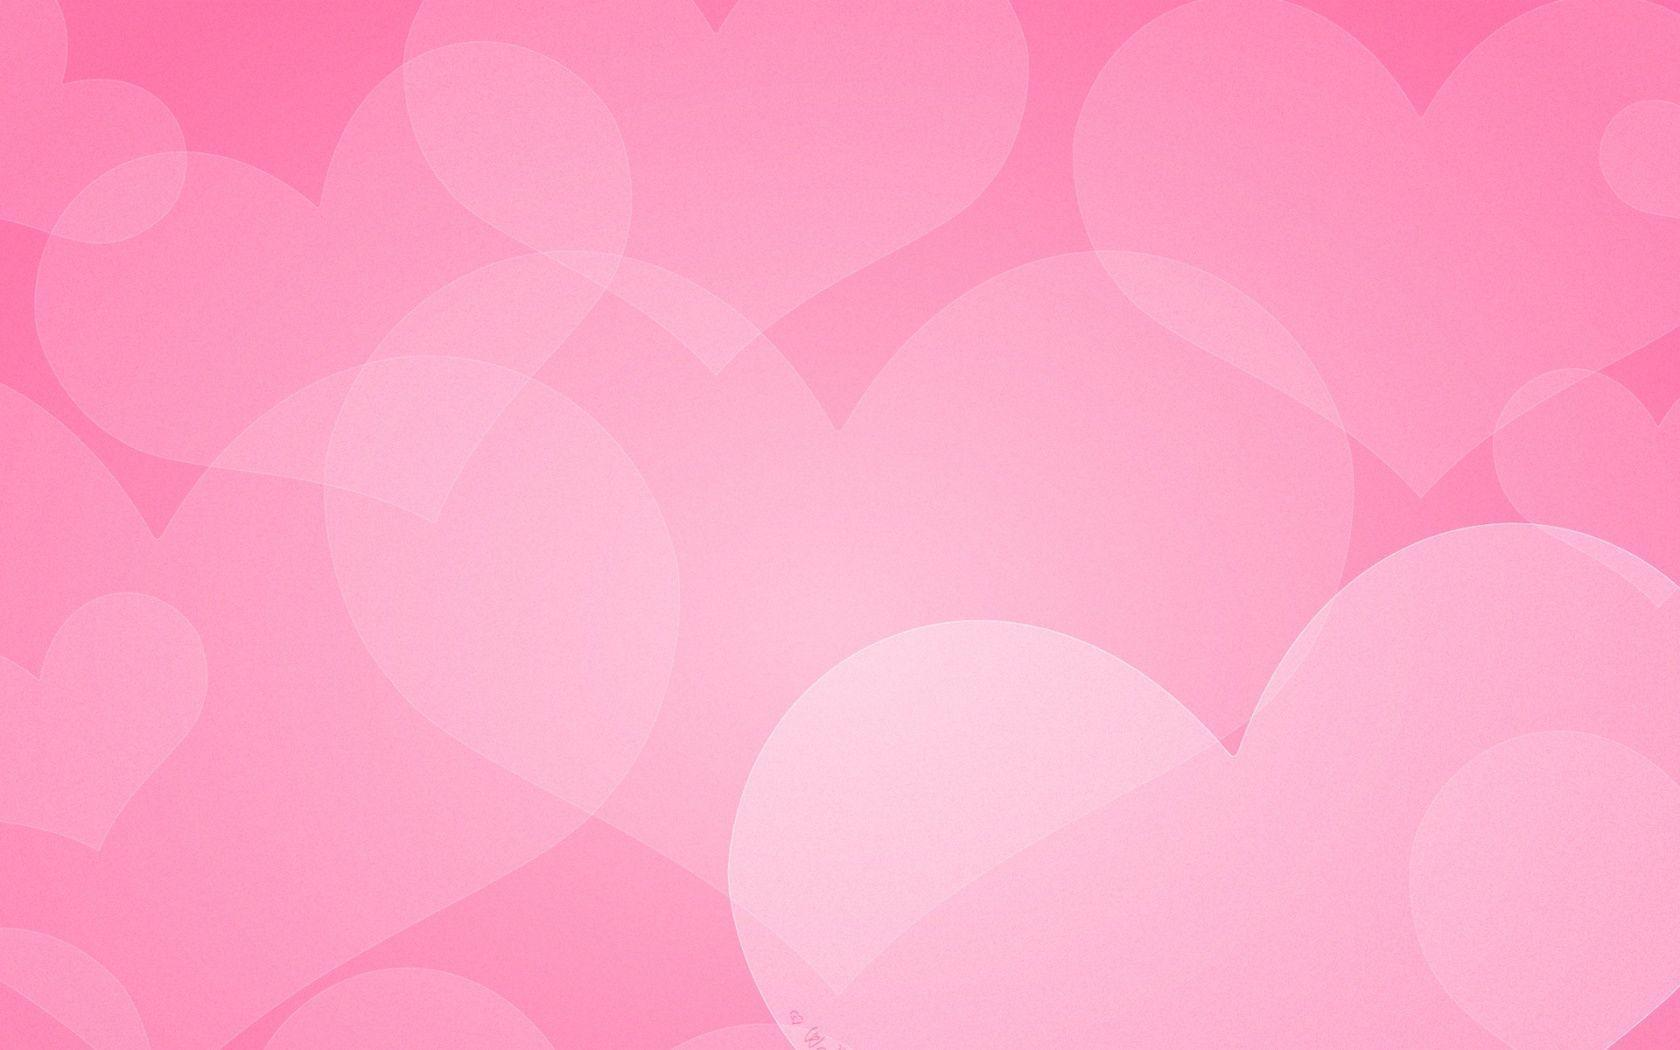 Uncategorized Pink Hearts Backgrounds pink hearts backgrounds wallpaper cave hd image 961